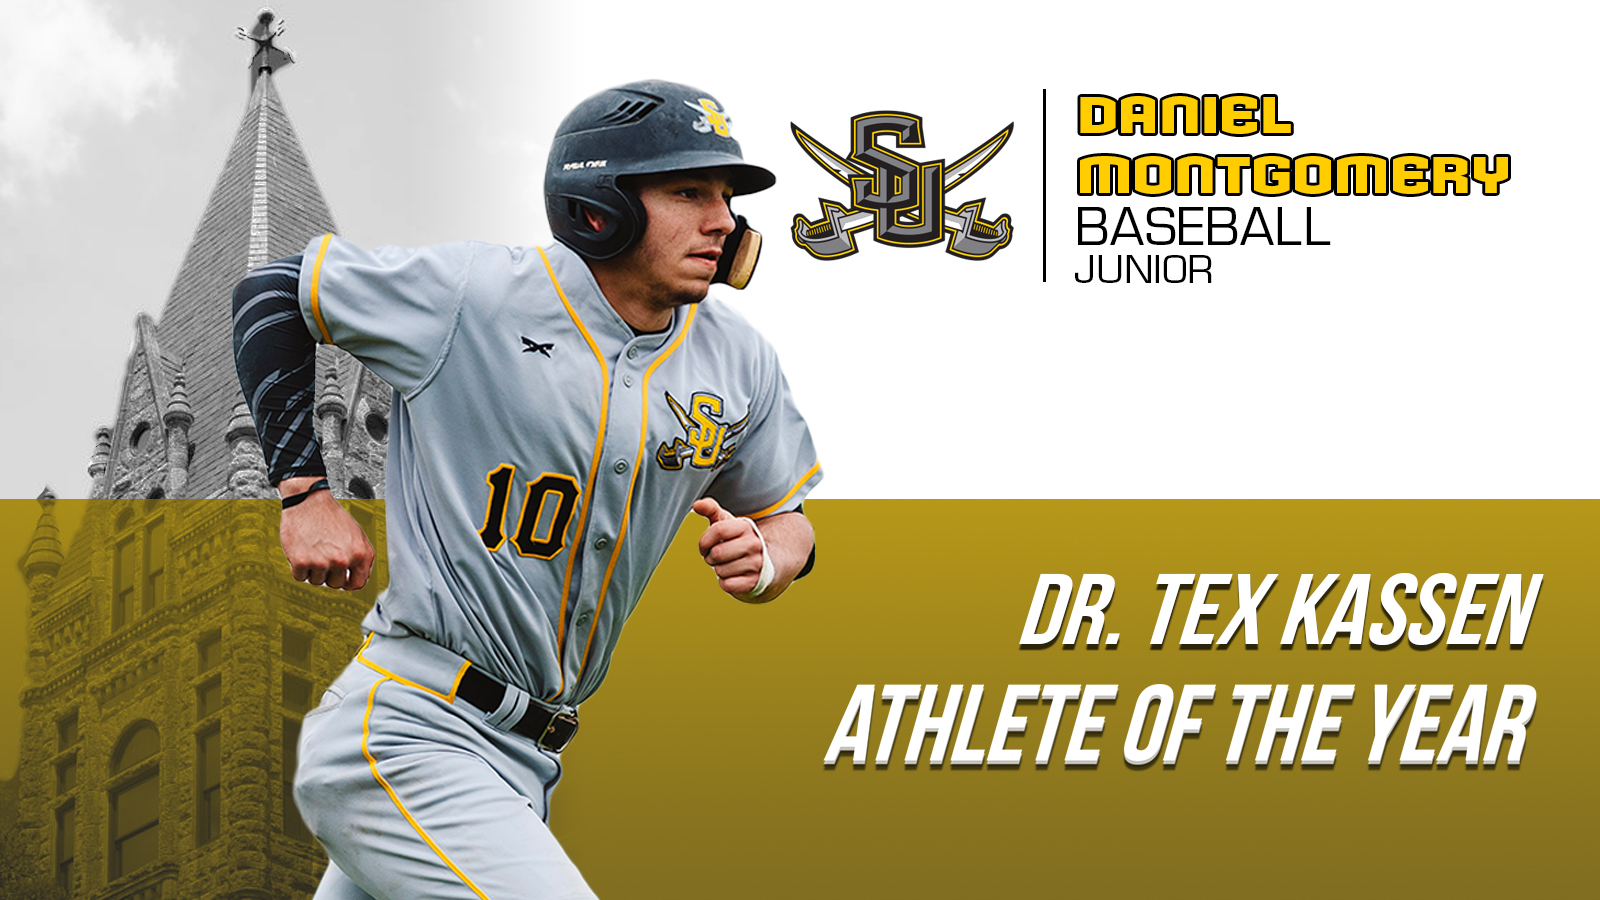 Daniel Montgomery Jr. Named Southwestern University Dr. Tex Kassen Male Athlete of the Year